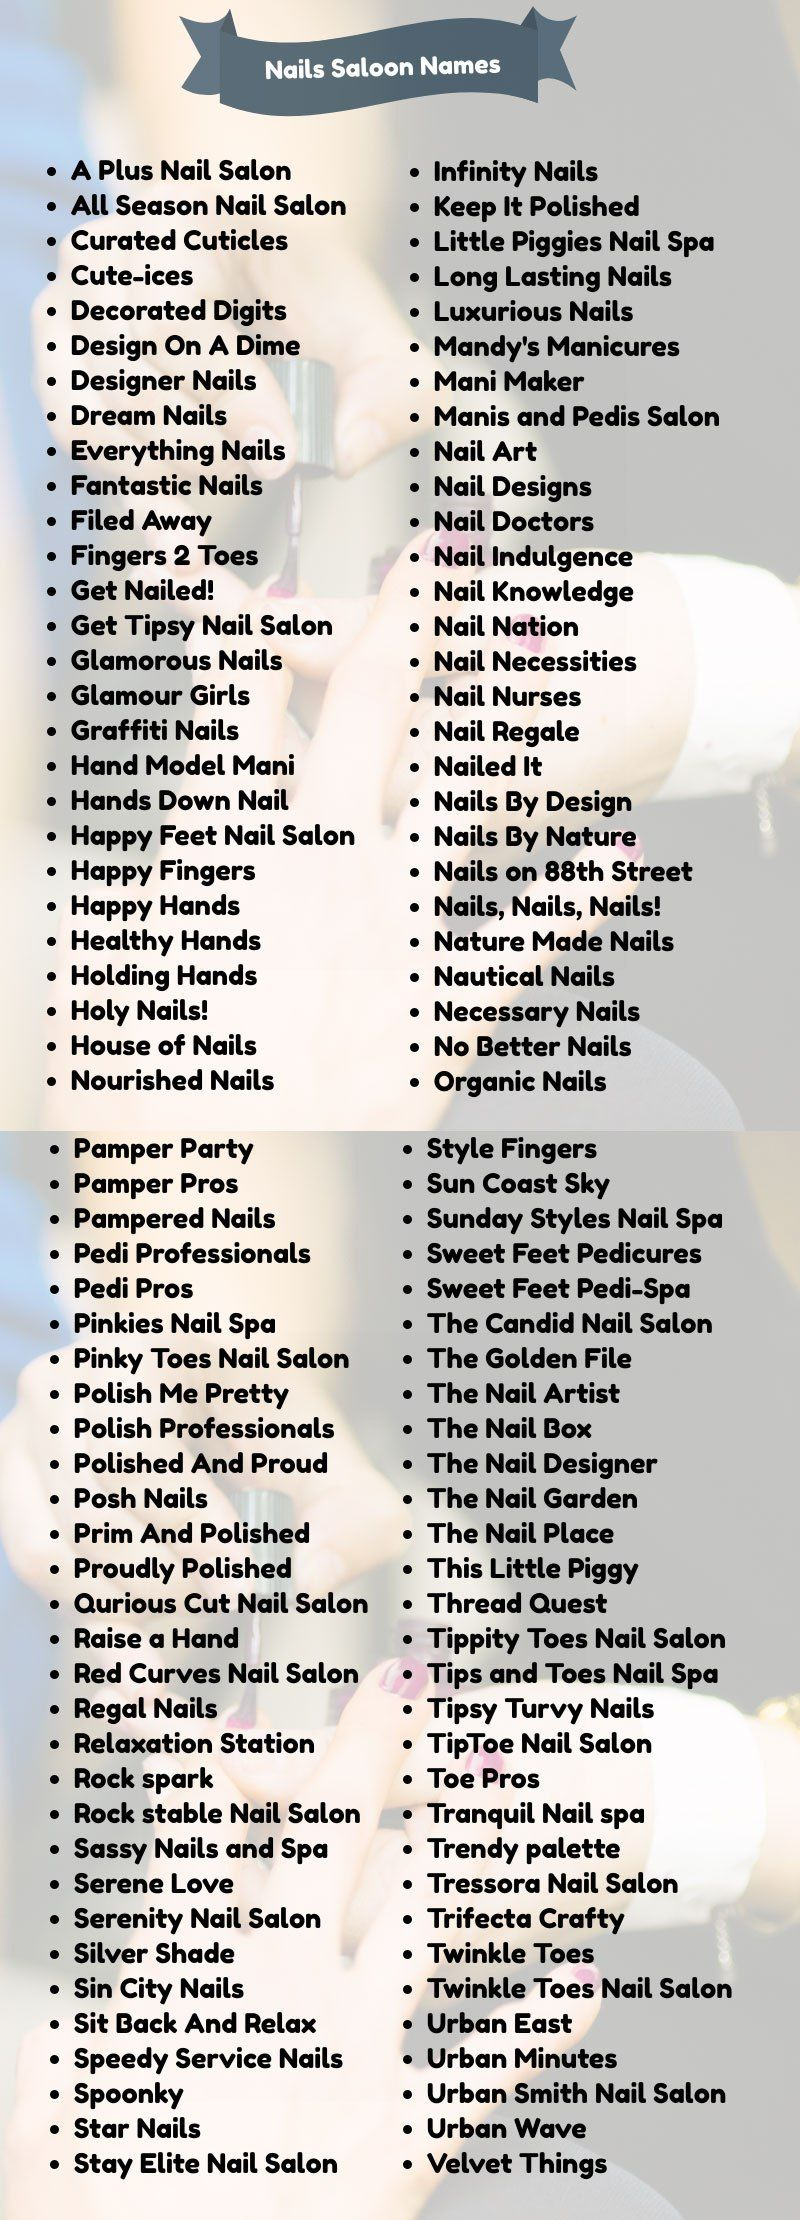 20+ Classy Nail Salon Names for Your Business in 20  Nail